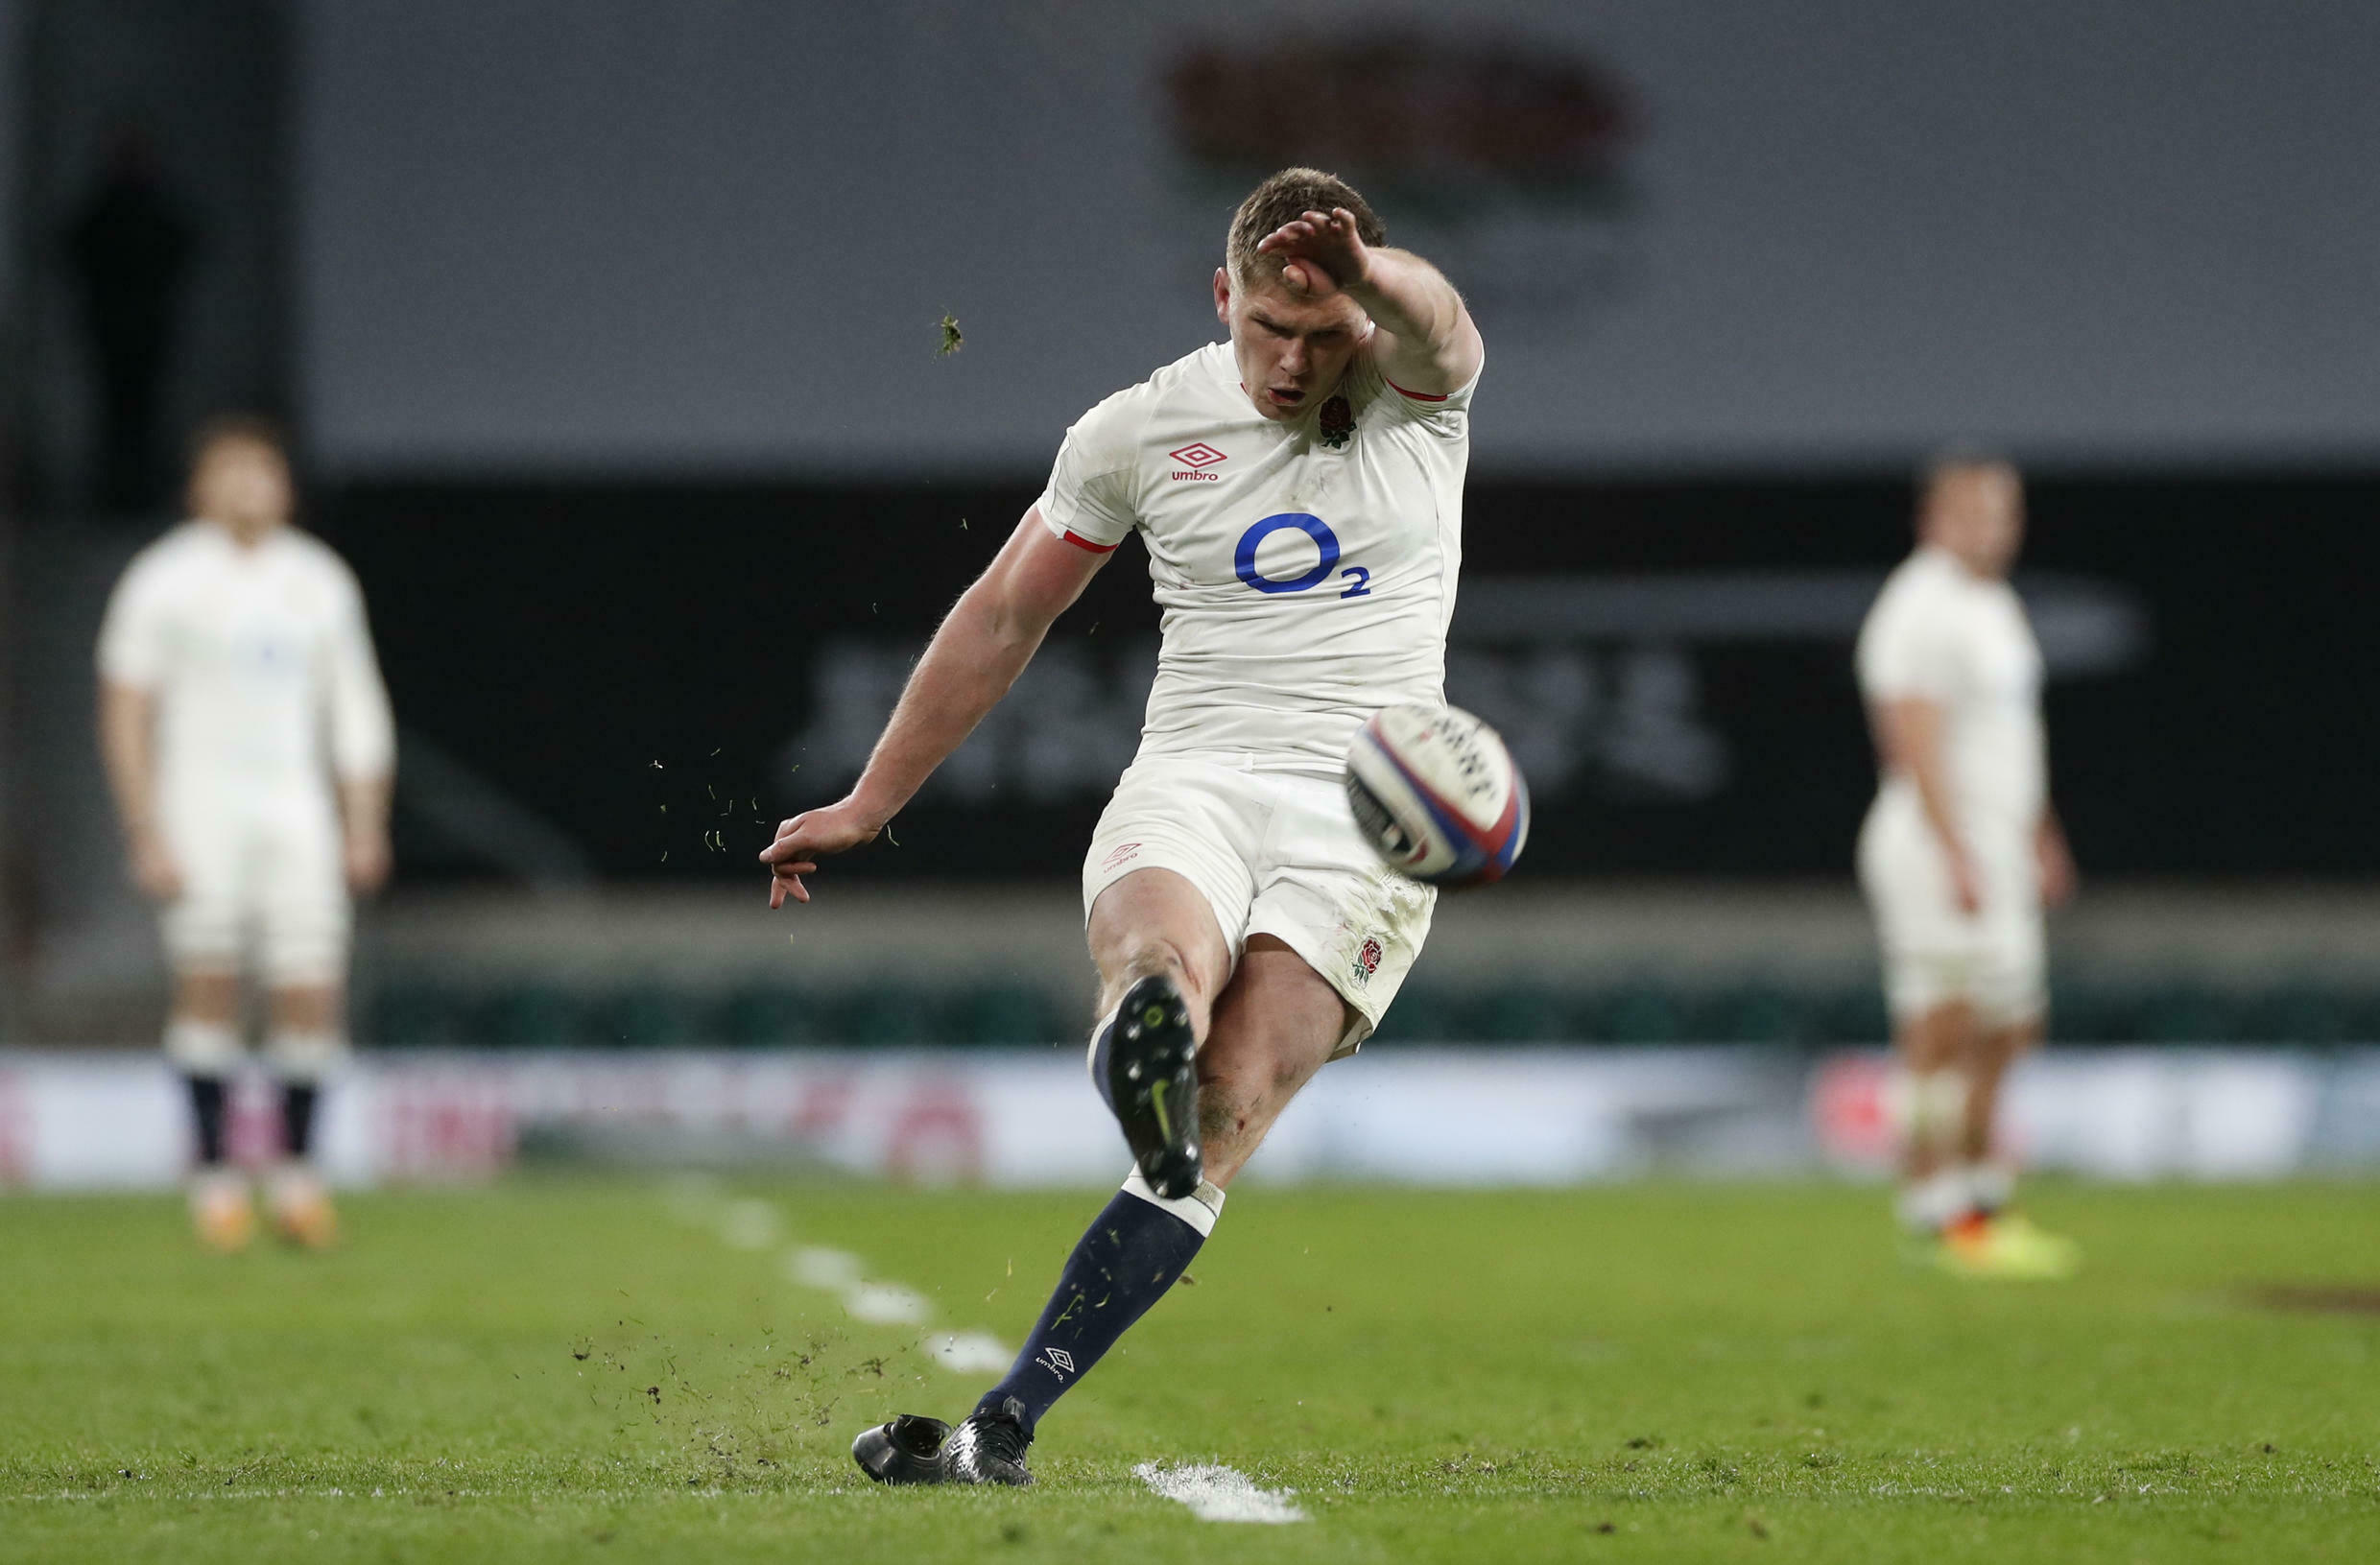 2021-03-13T182651Z_1628011081_UP1EH3D1F8RJH_RTRMADP_3_RUGBY-UNION-NATIONS-ENG-FRA